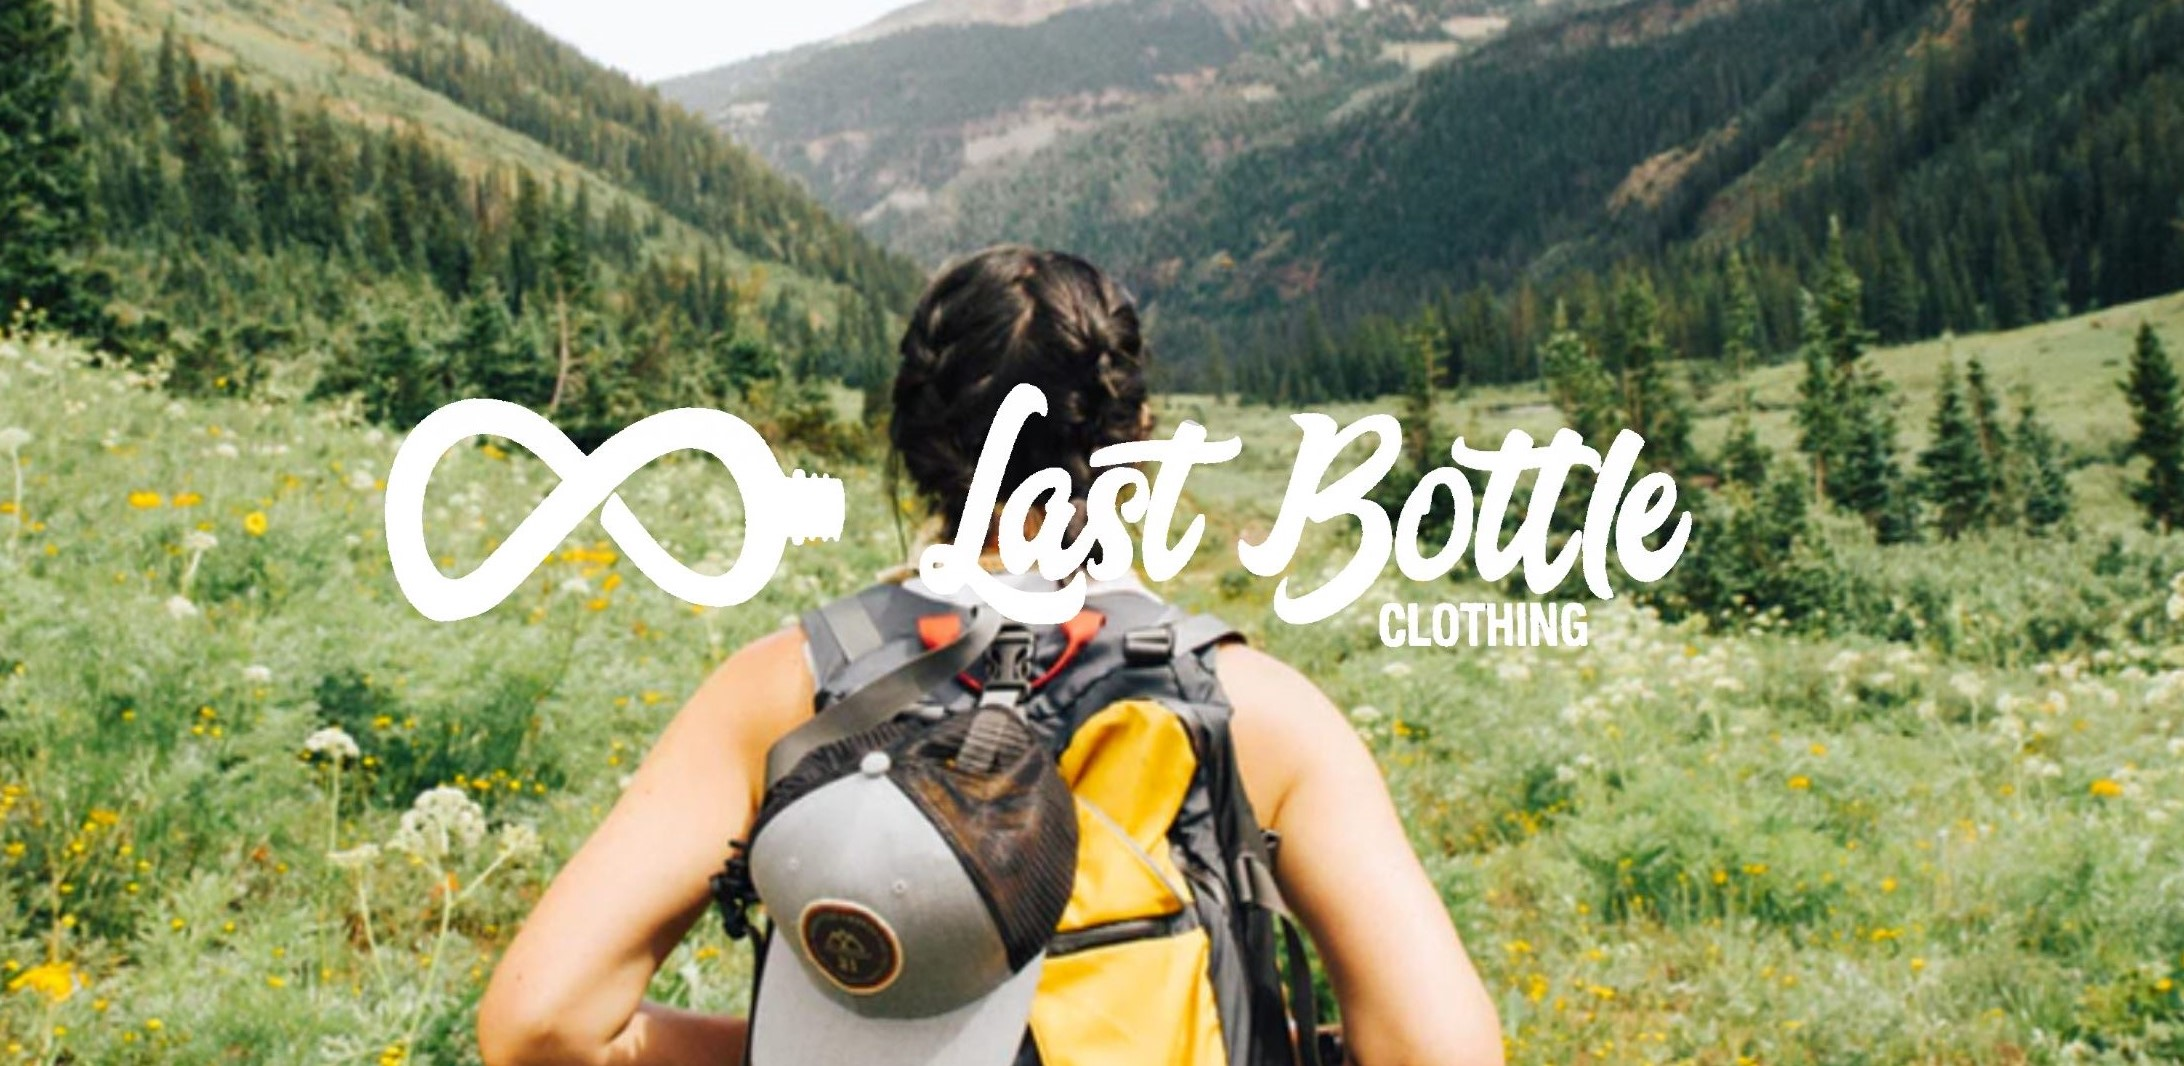 Last Bottle Clothing in nature